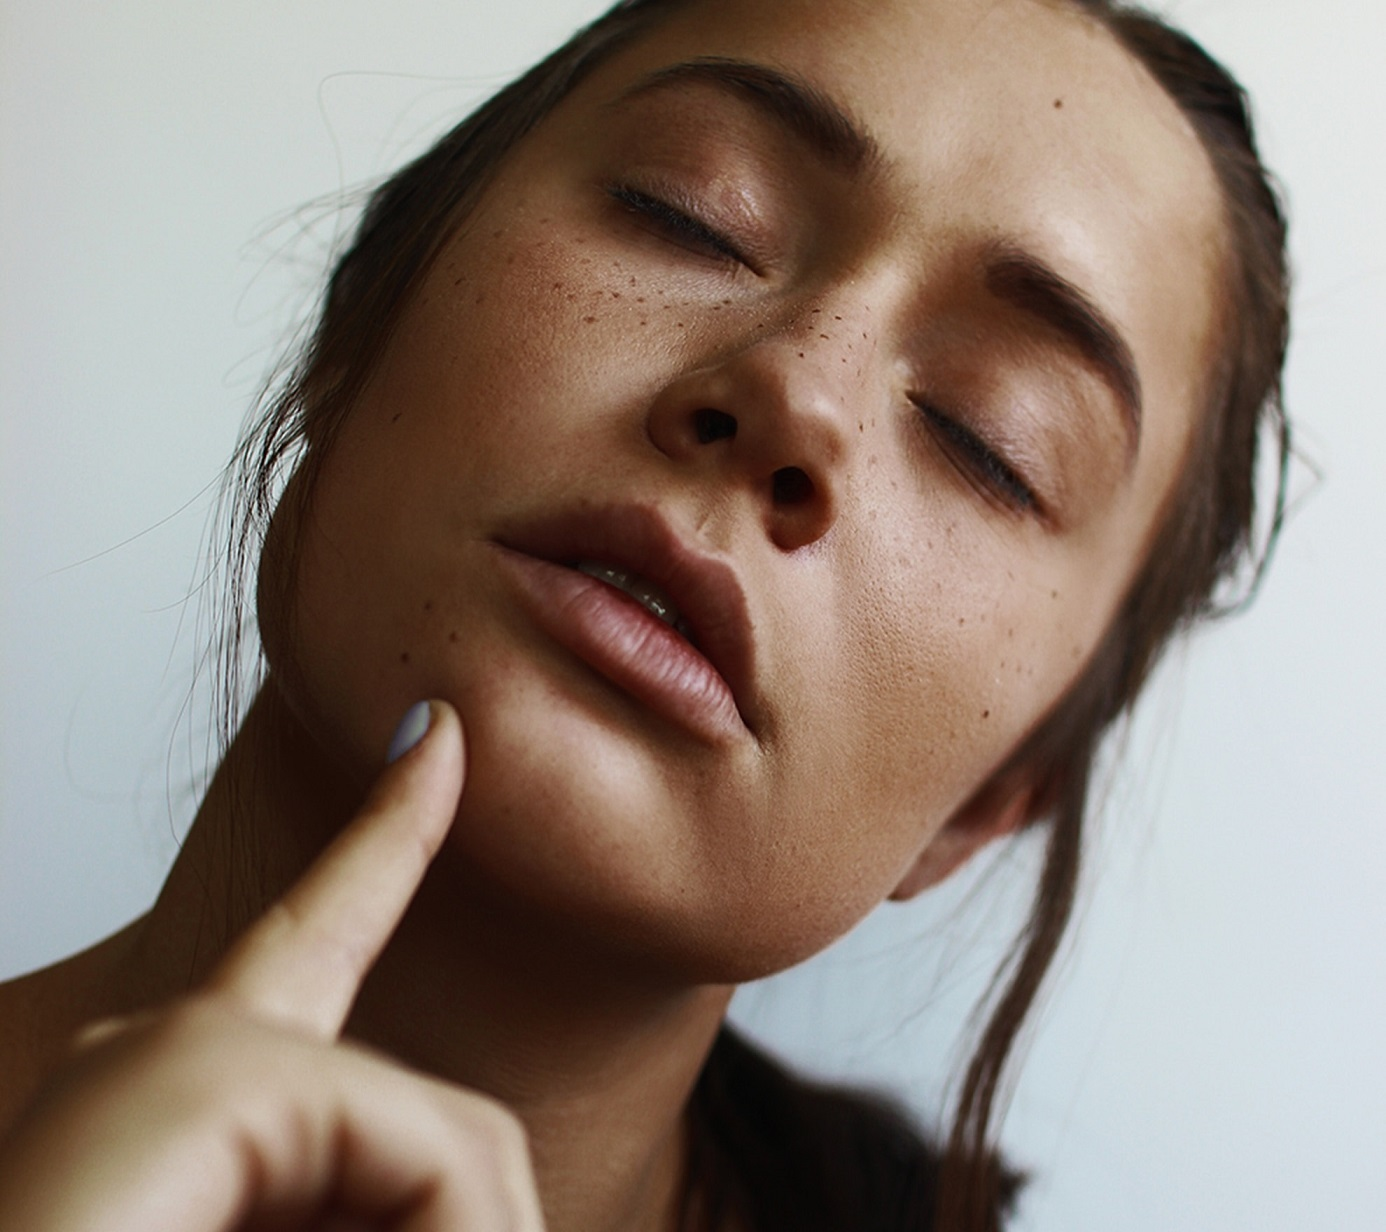 girl with freckles pointing at her chin